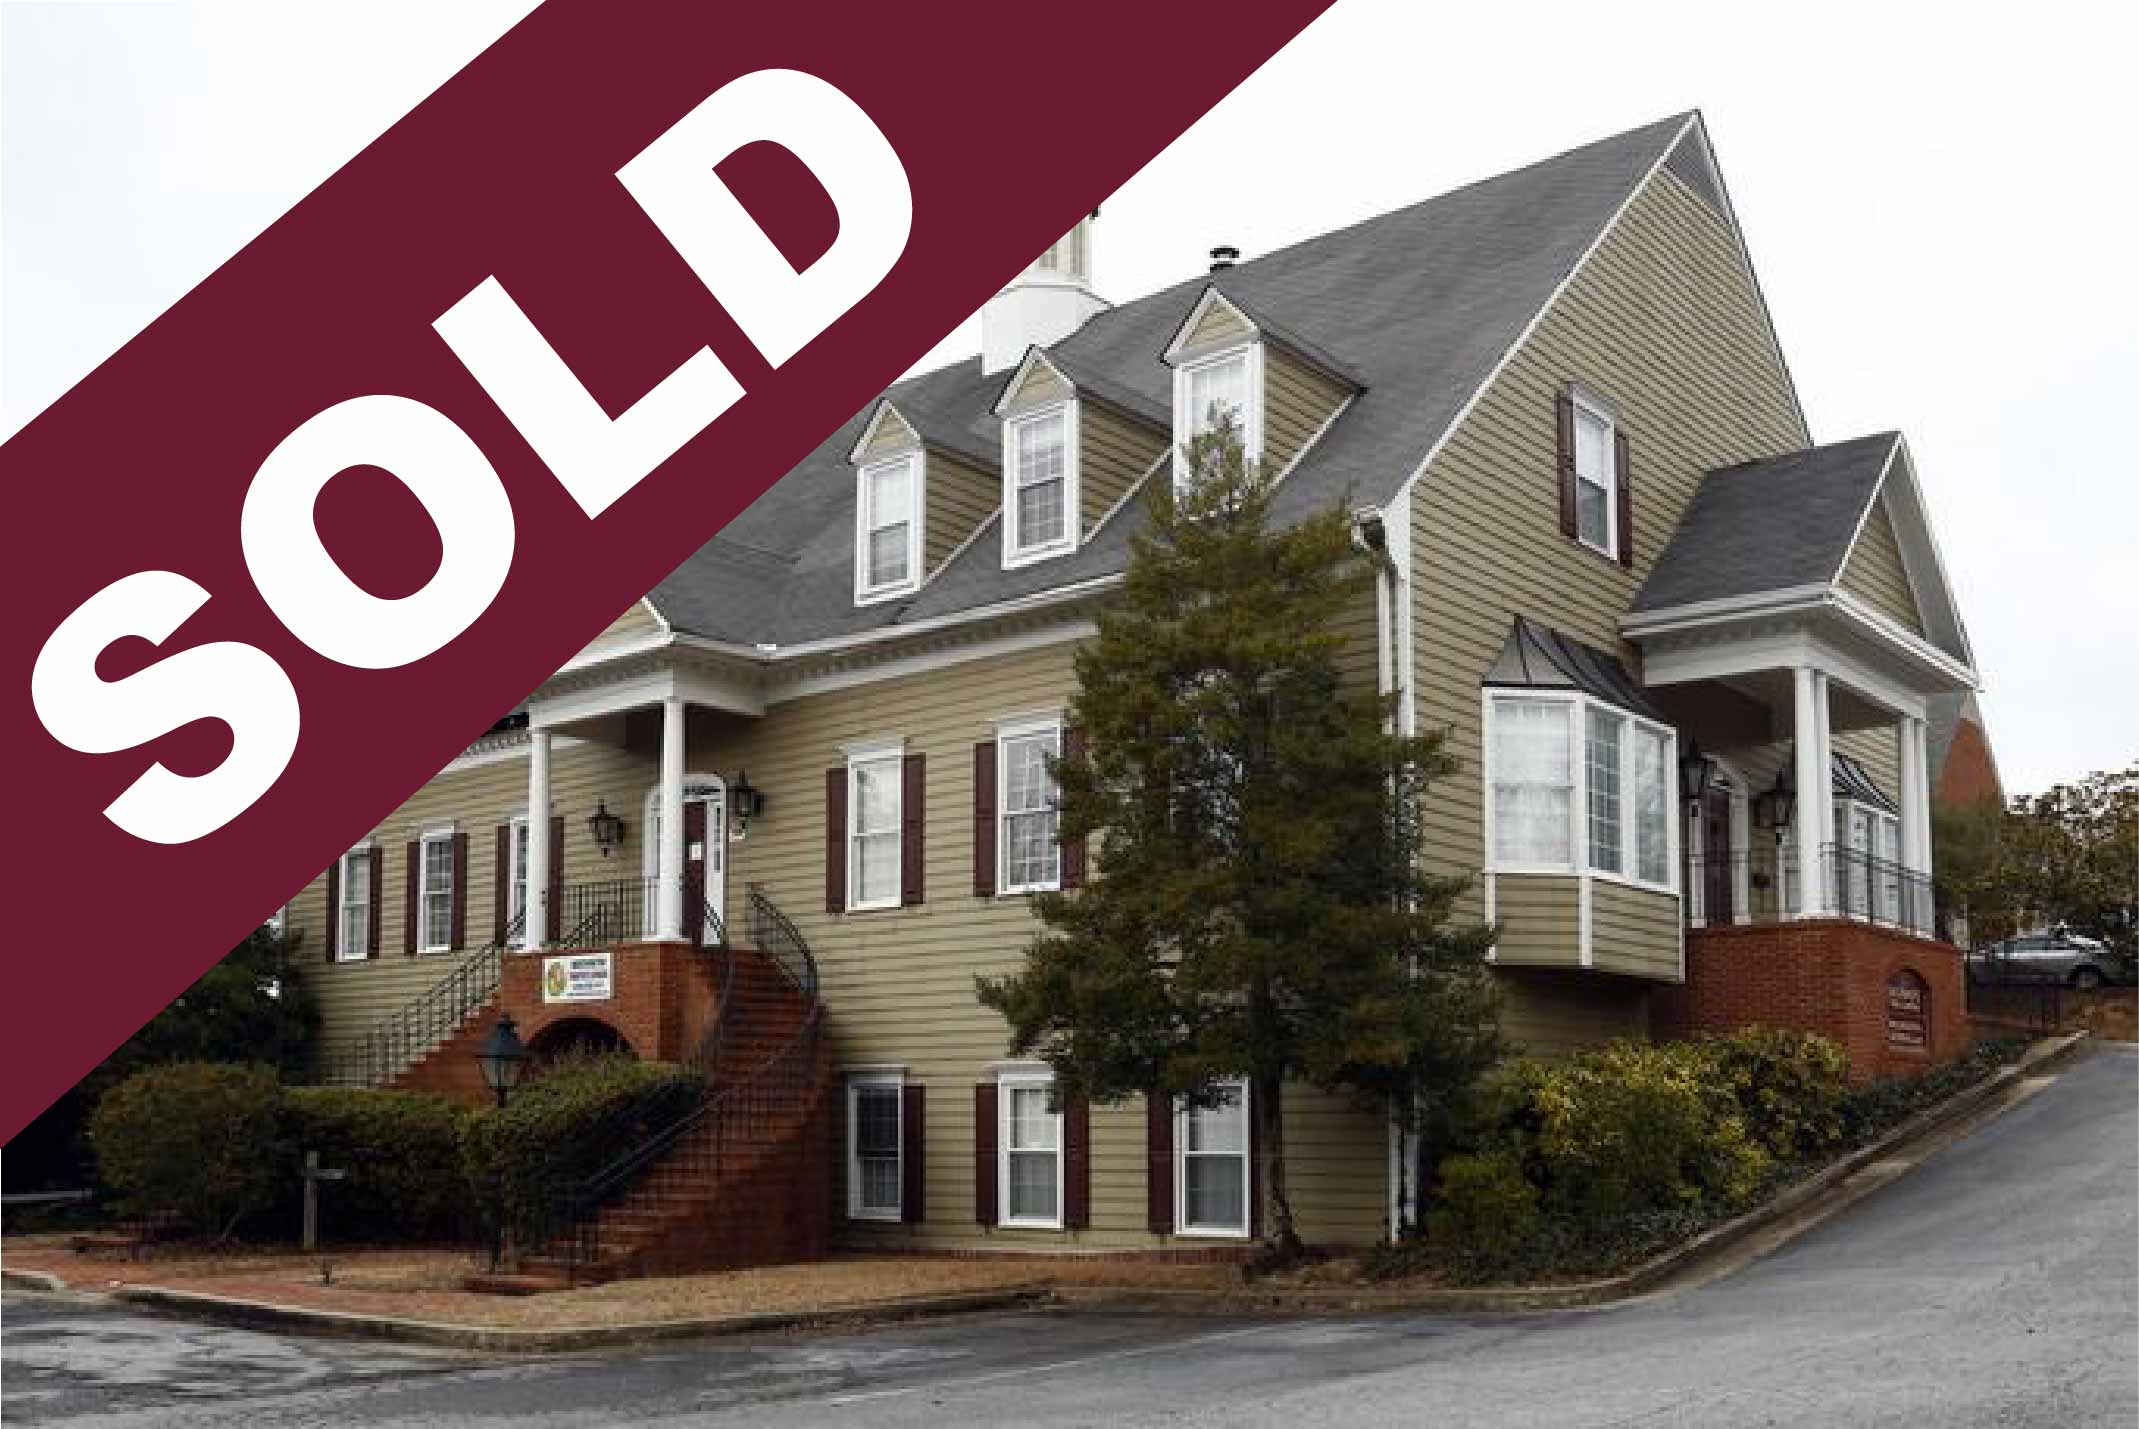 SOLD: Pineapple House - 4036 Wetherburn  Way, Norcross, GA  30092